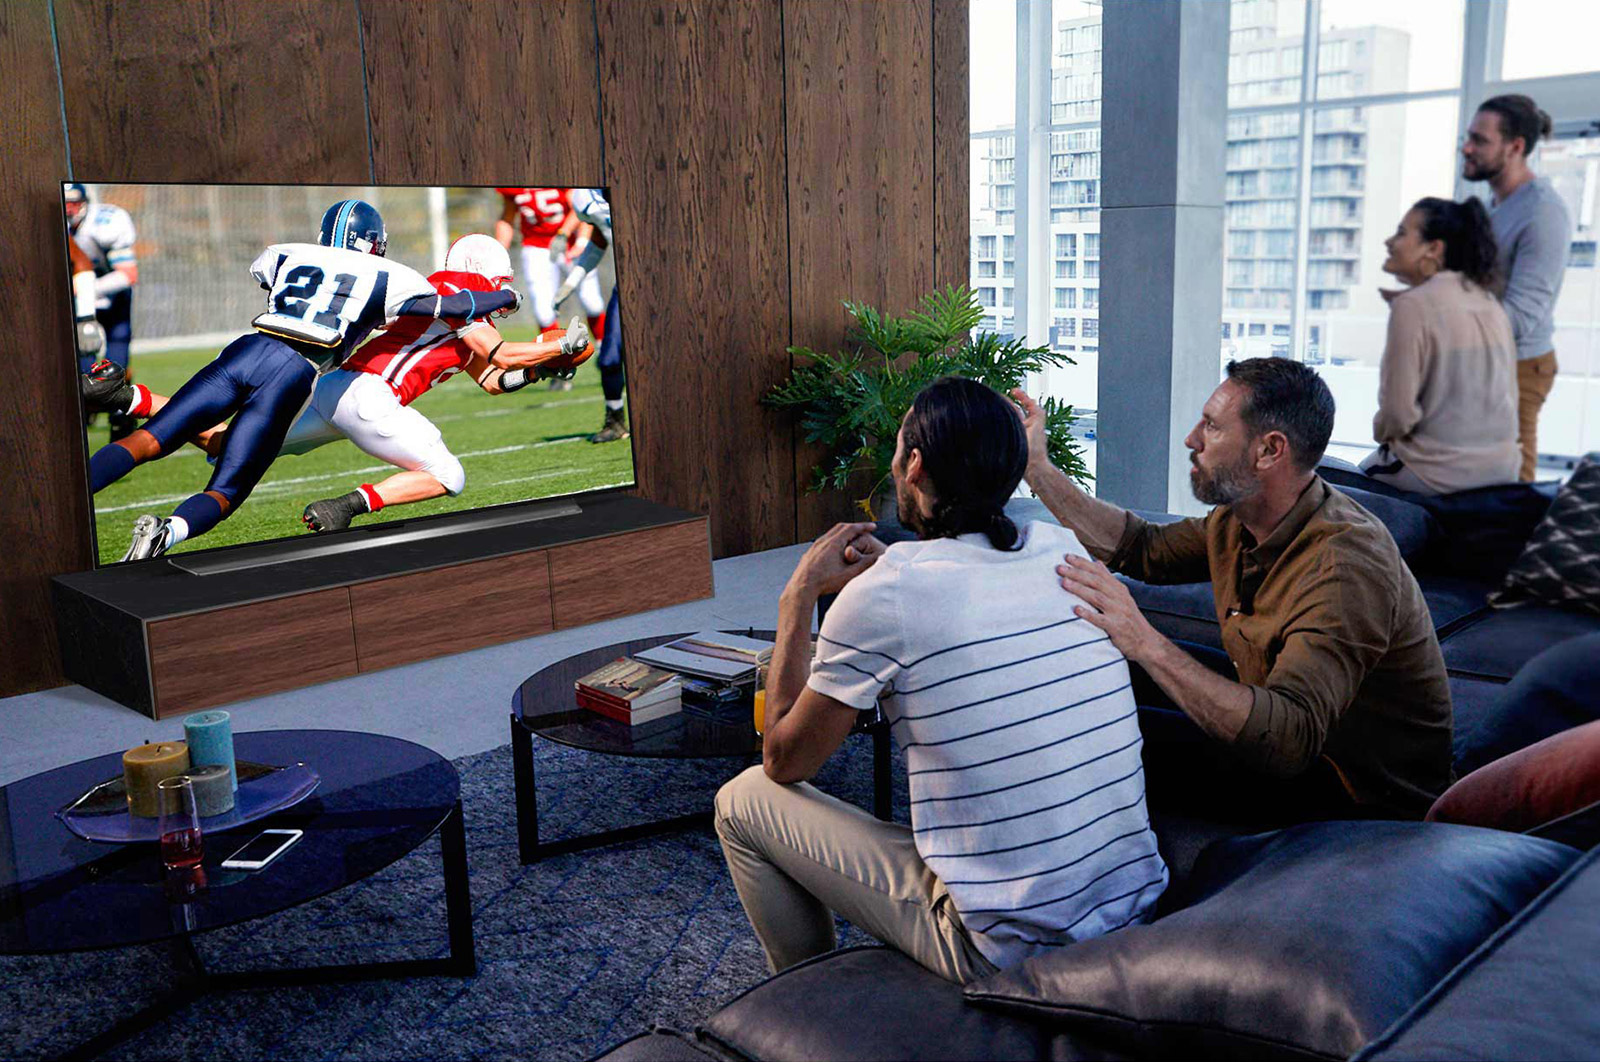 LG OLED – the top tech for your next TV